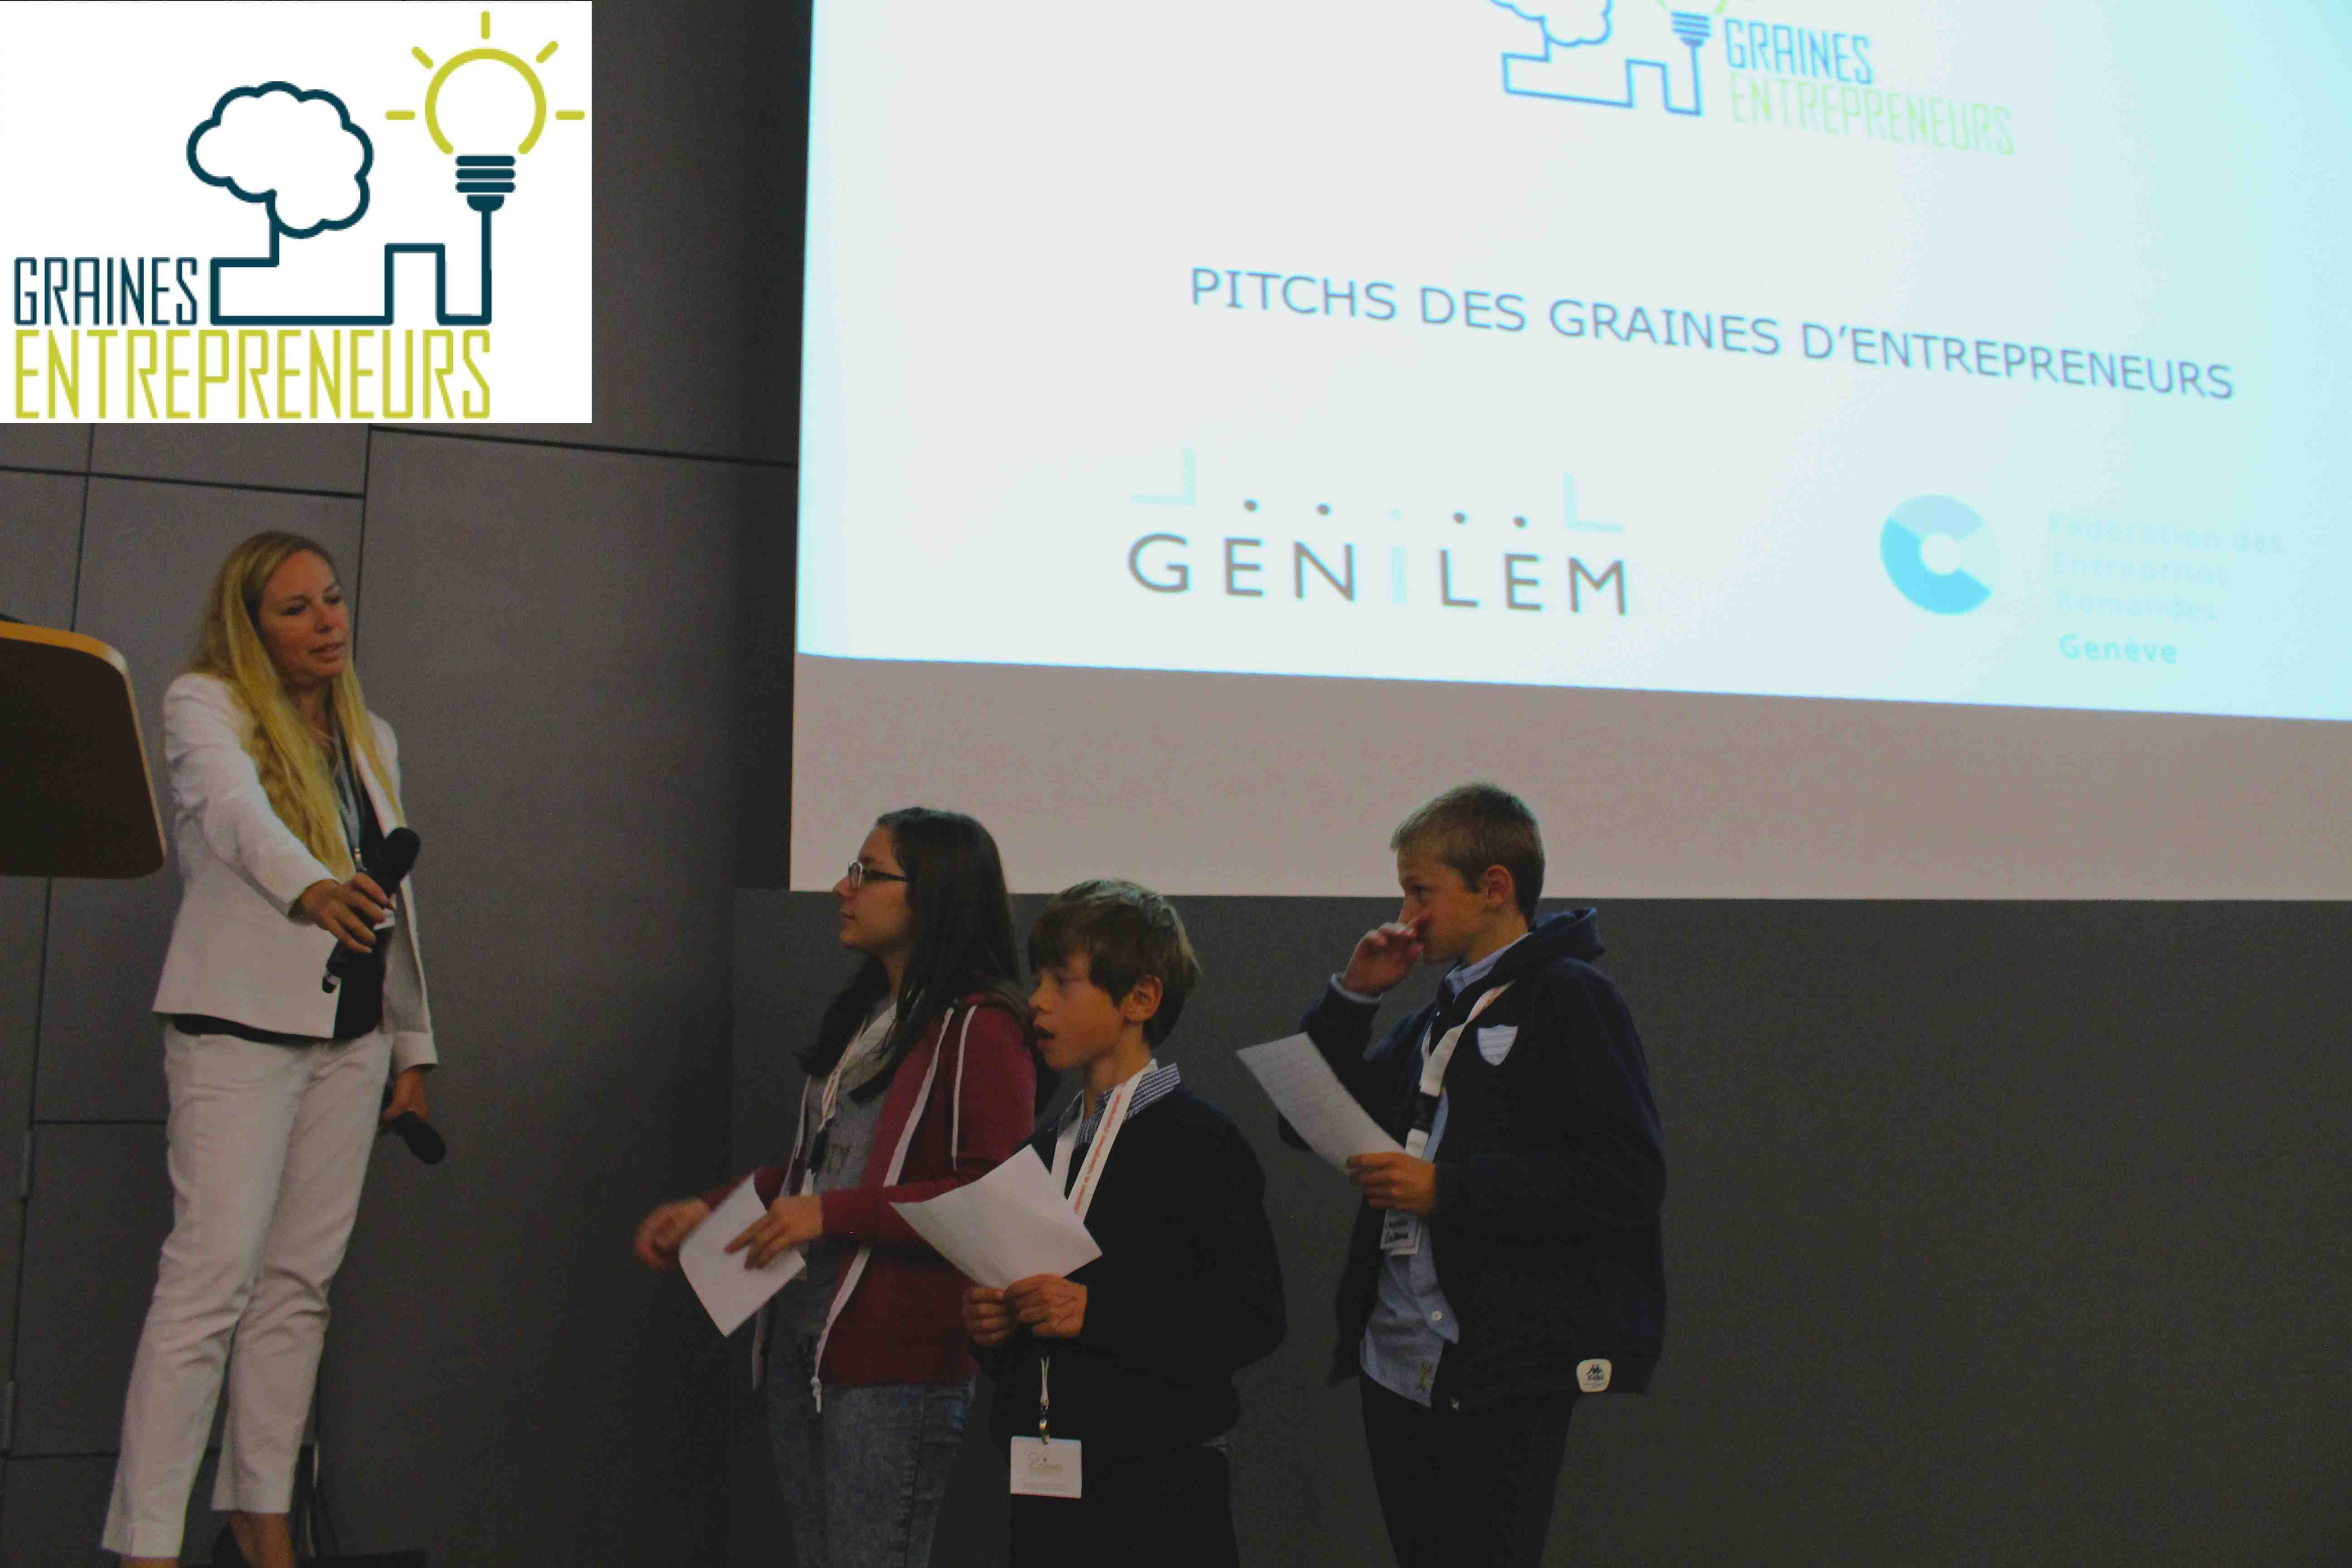 Graines d entrepreneurs Junior startup day genilem FER geneve coach entrepreneuriat innovation enfan